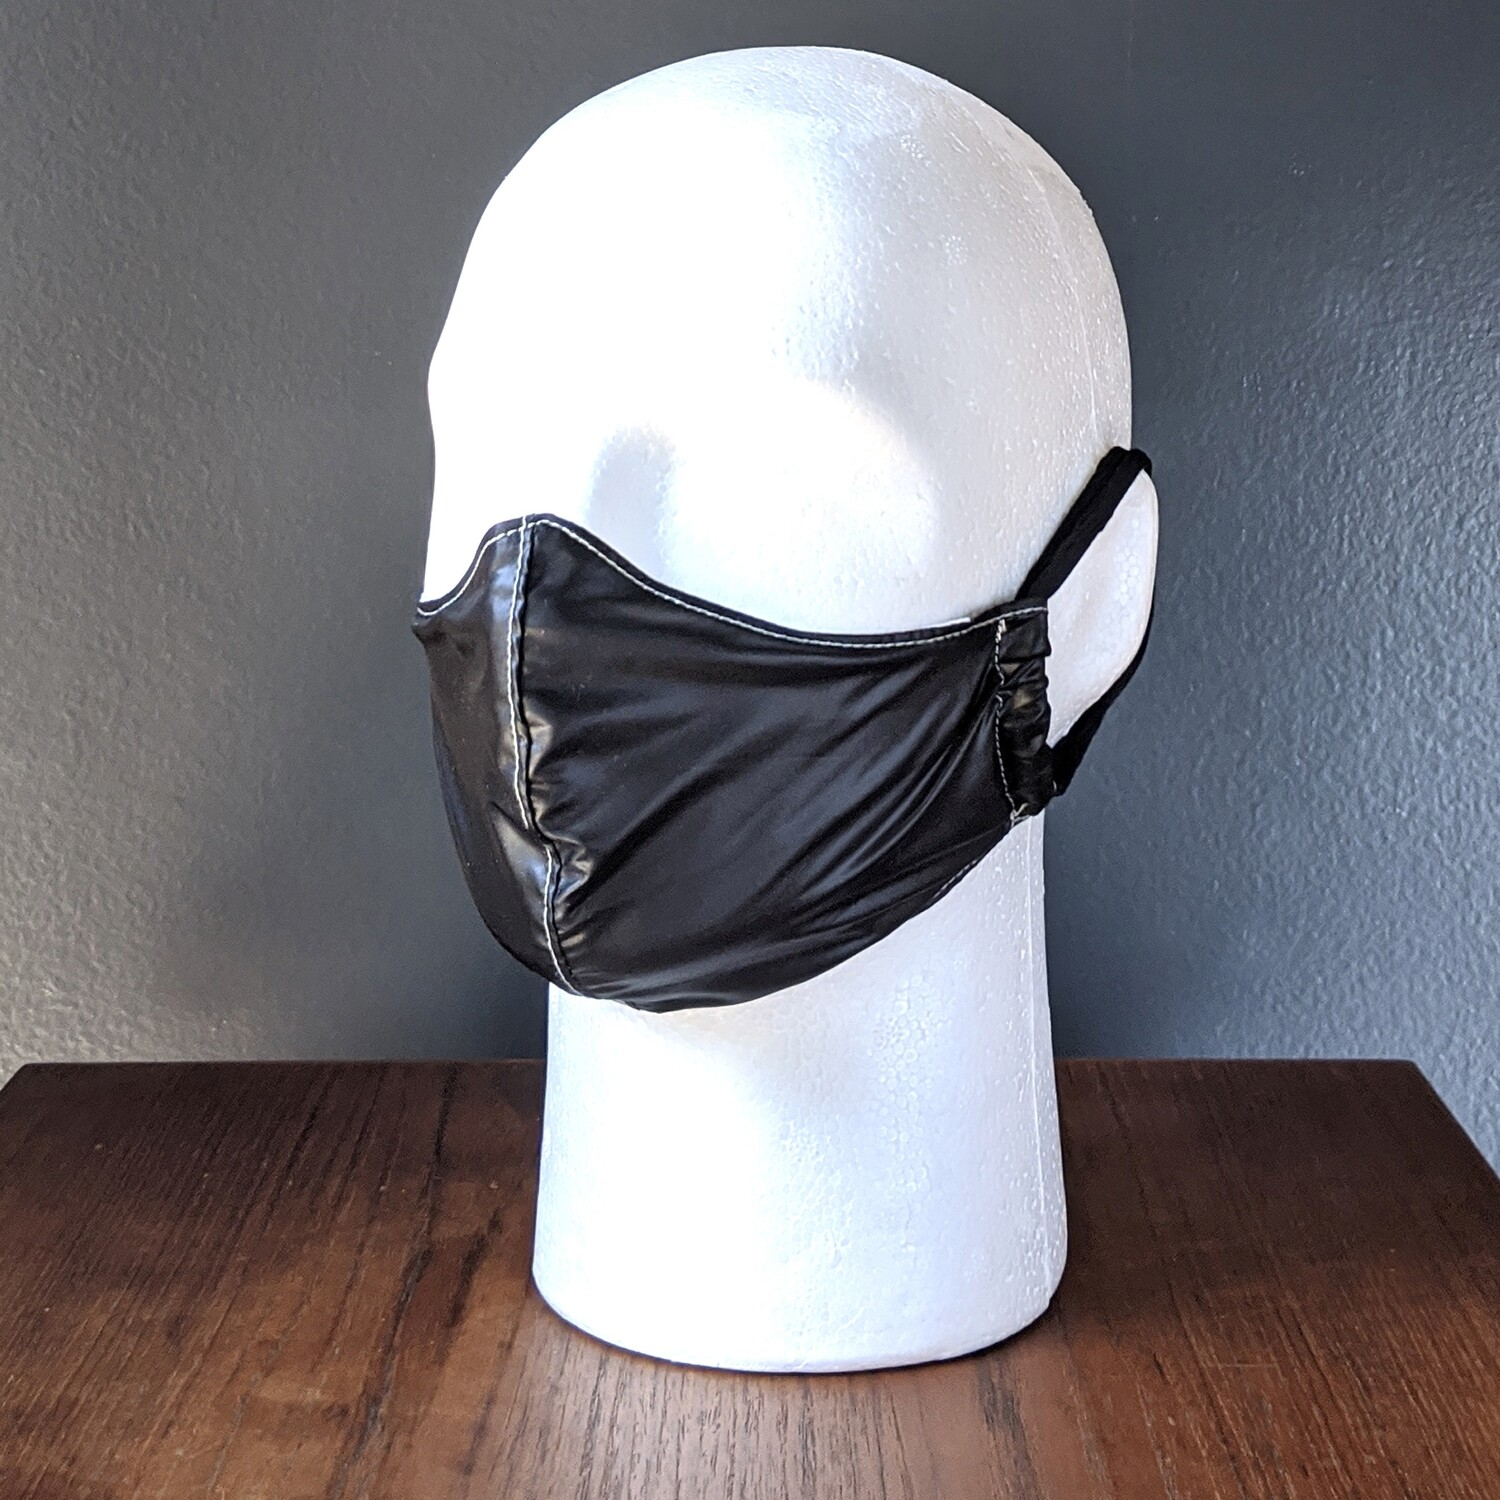 Black Faux Leather Costume Face Mask, Pride, Mardi Gras, Halloween. Small, Unisex, Reusable, Double Layer for Smog, Pollen, Dust, Smoke. Made in USA